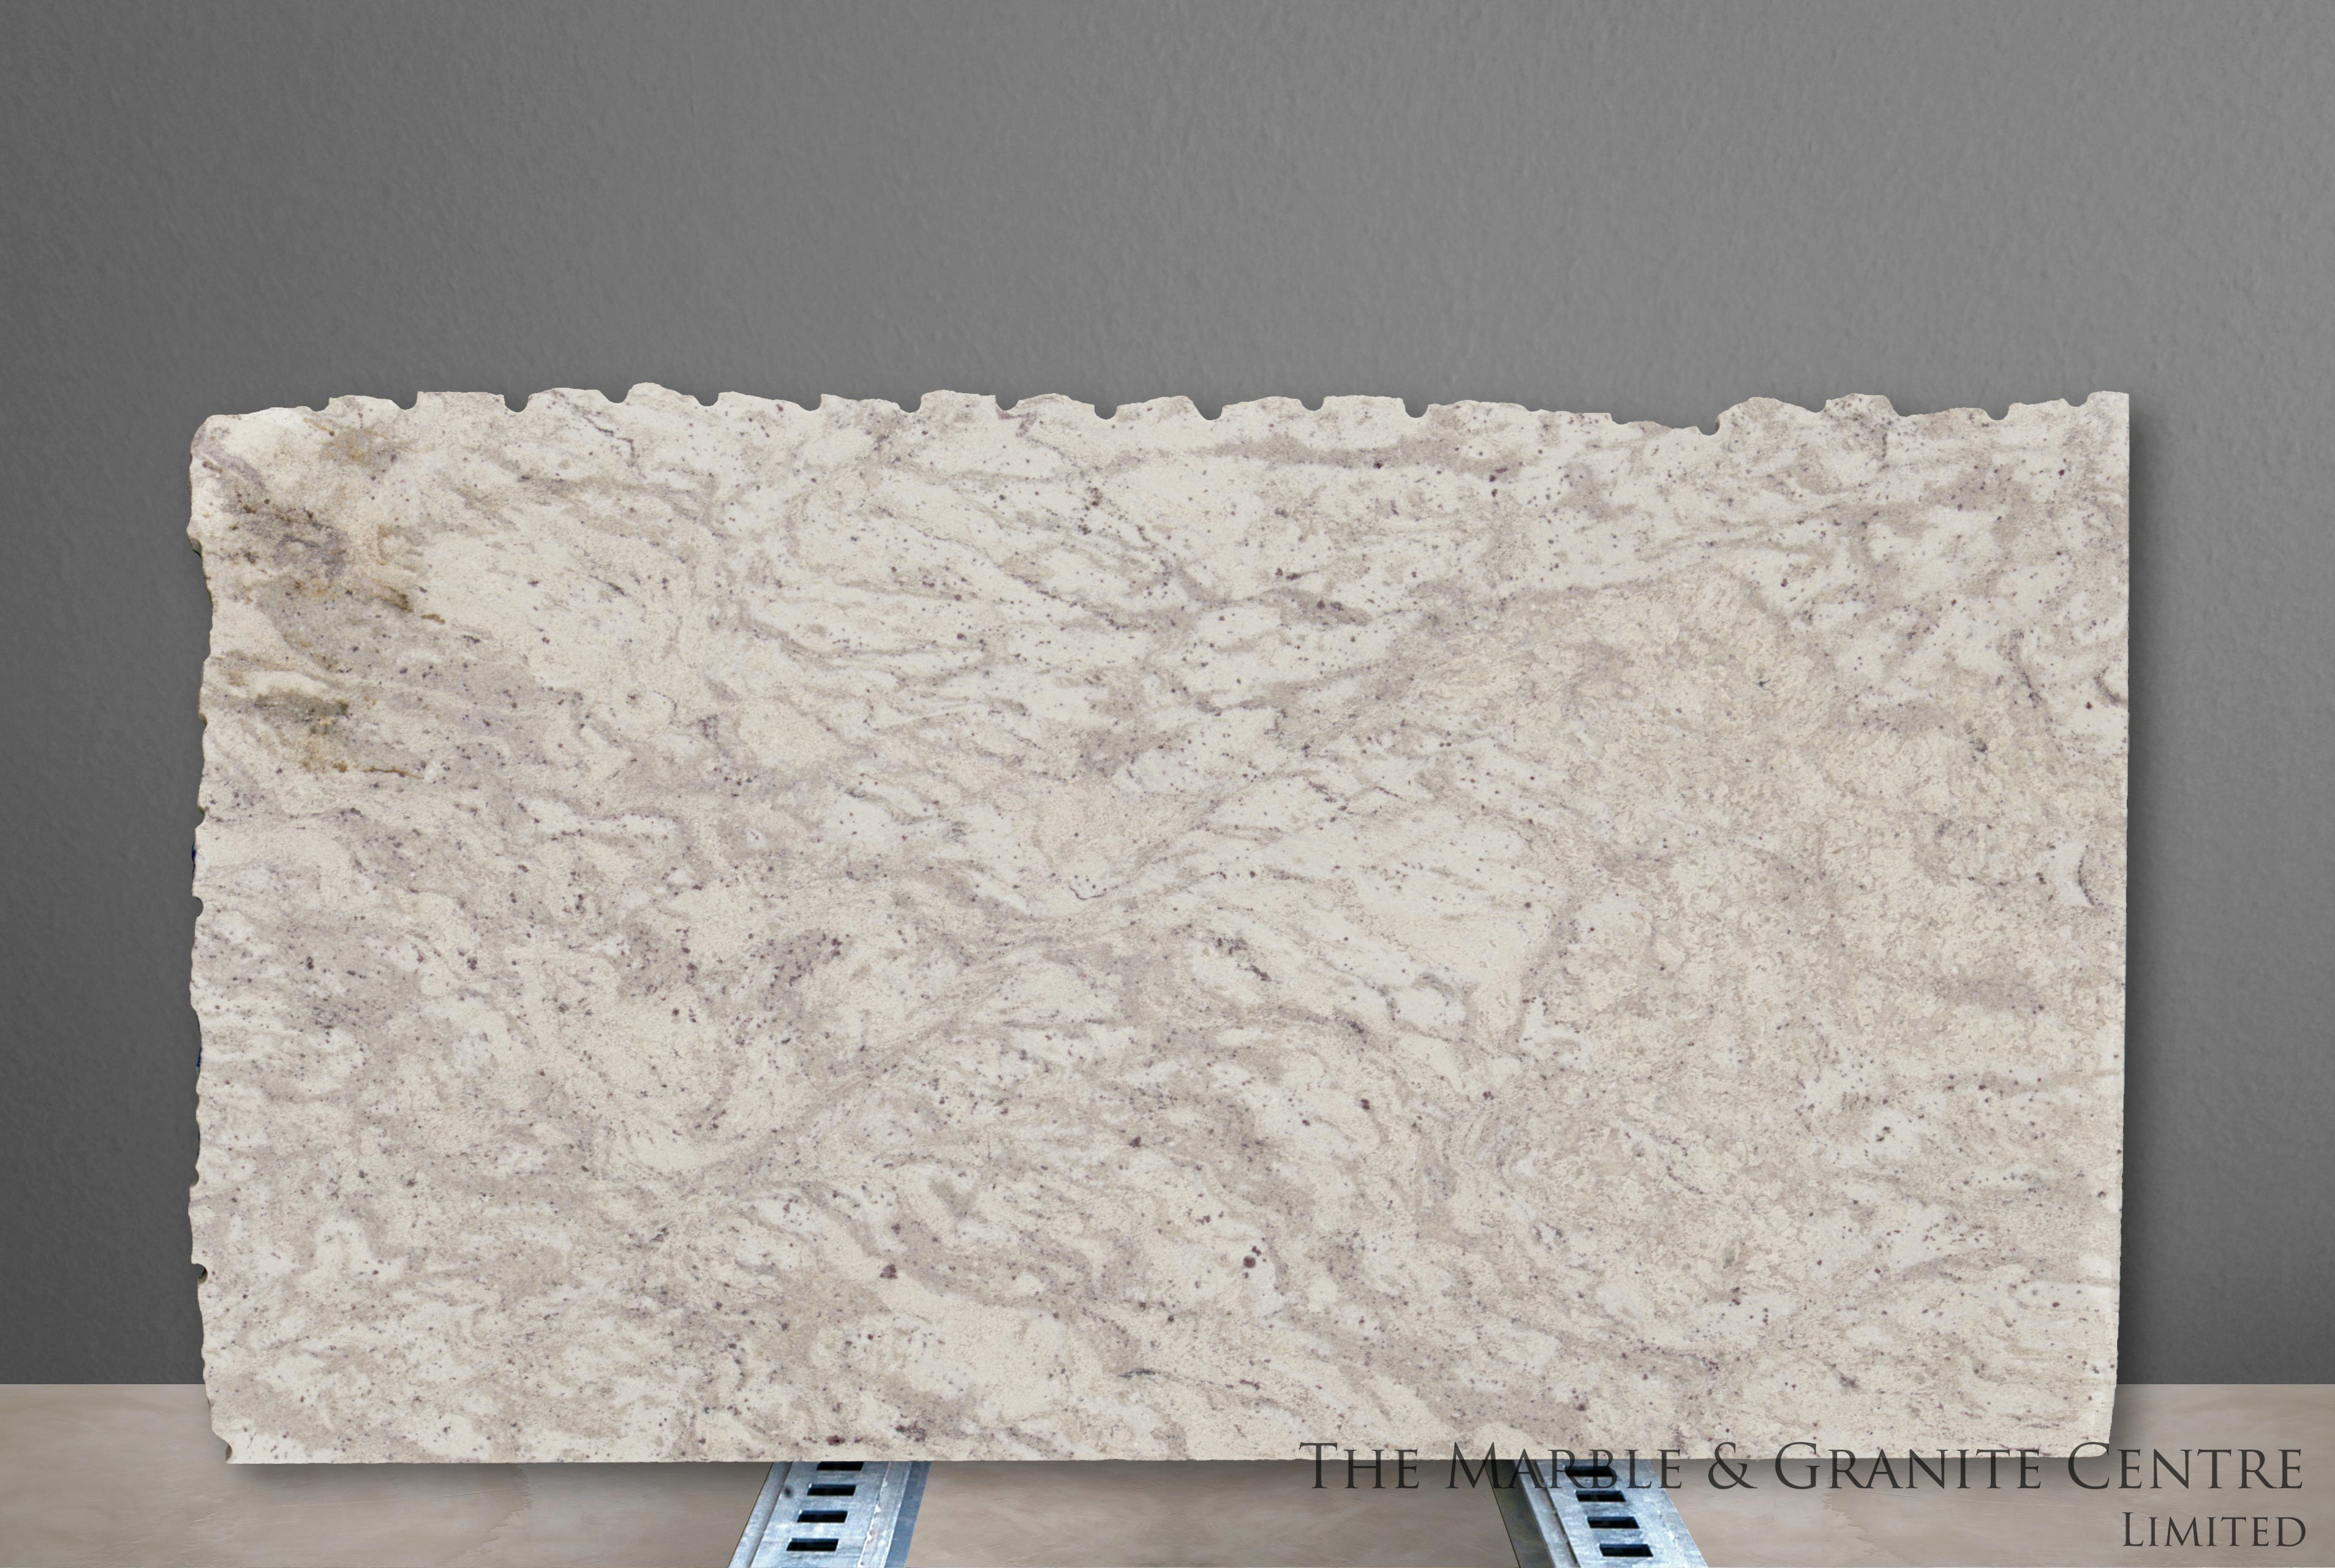 Granite Andromeda White Polished 30 mm [27792]